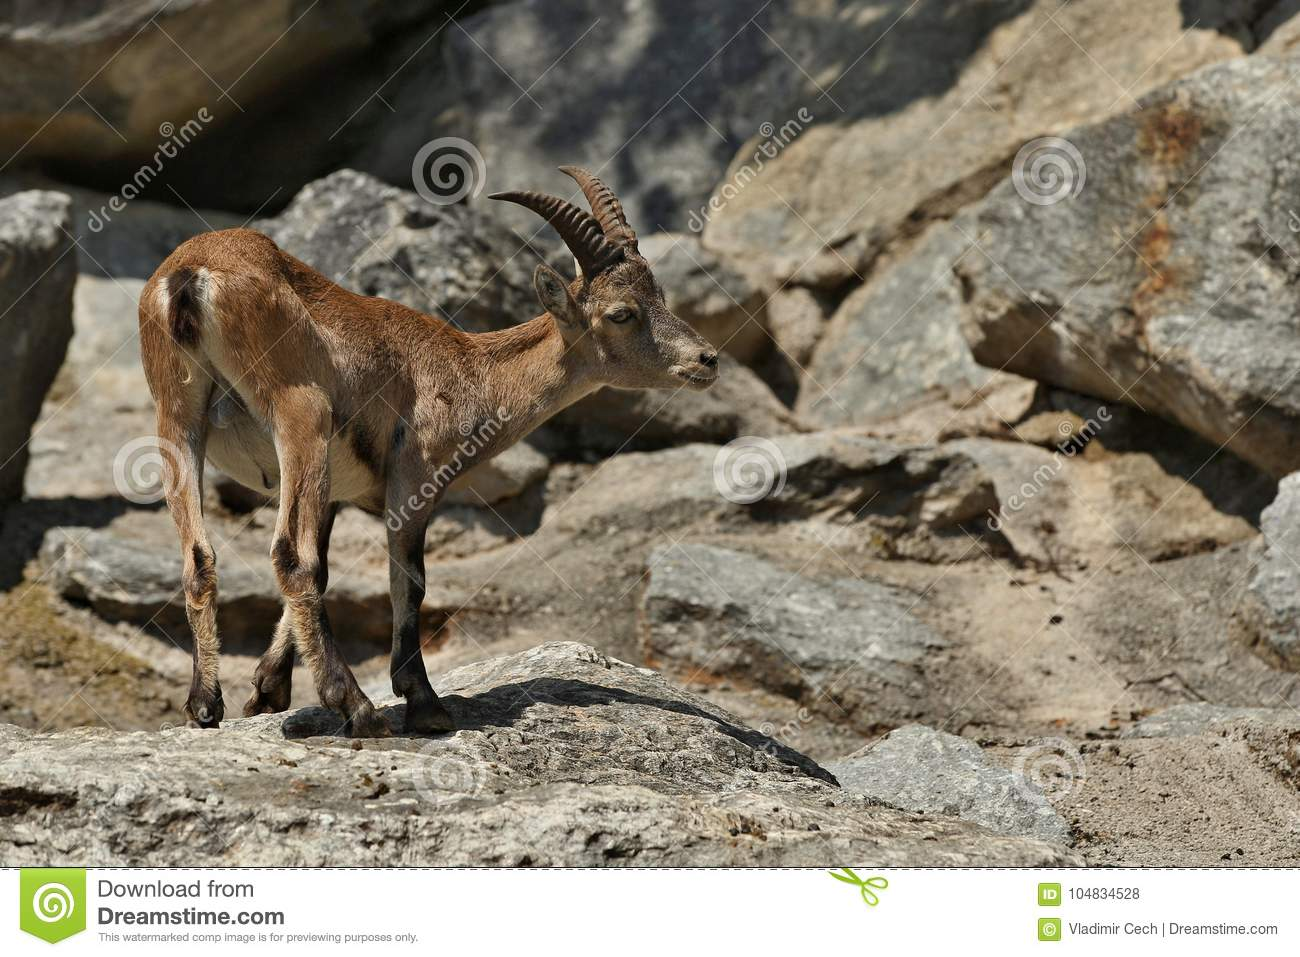 Ibex Fight In The Rocky Mountain Area Stock Photo - Image of europe